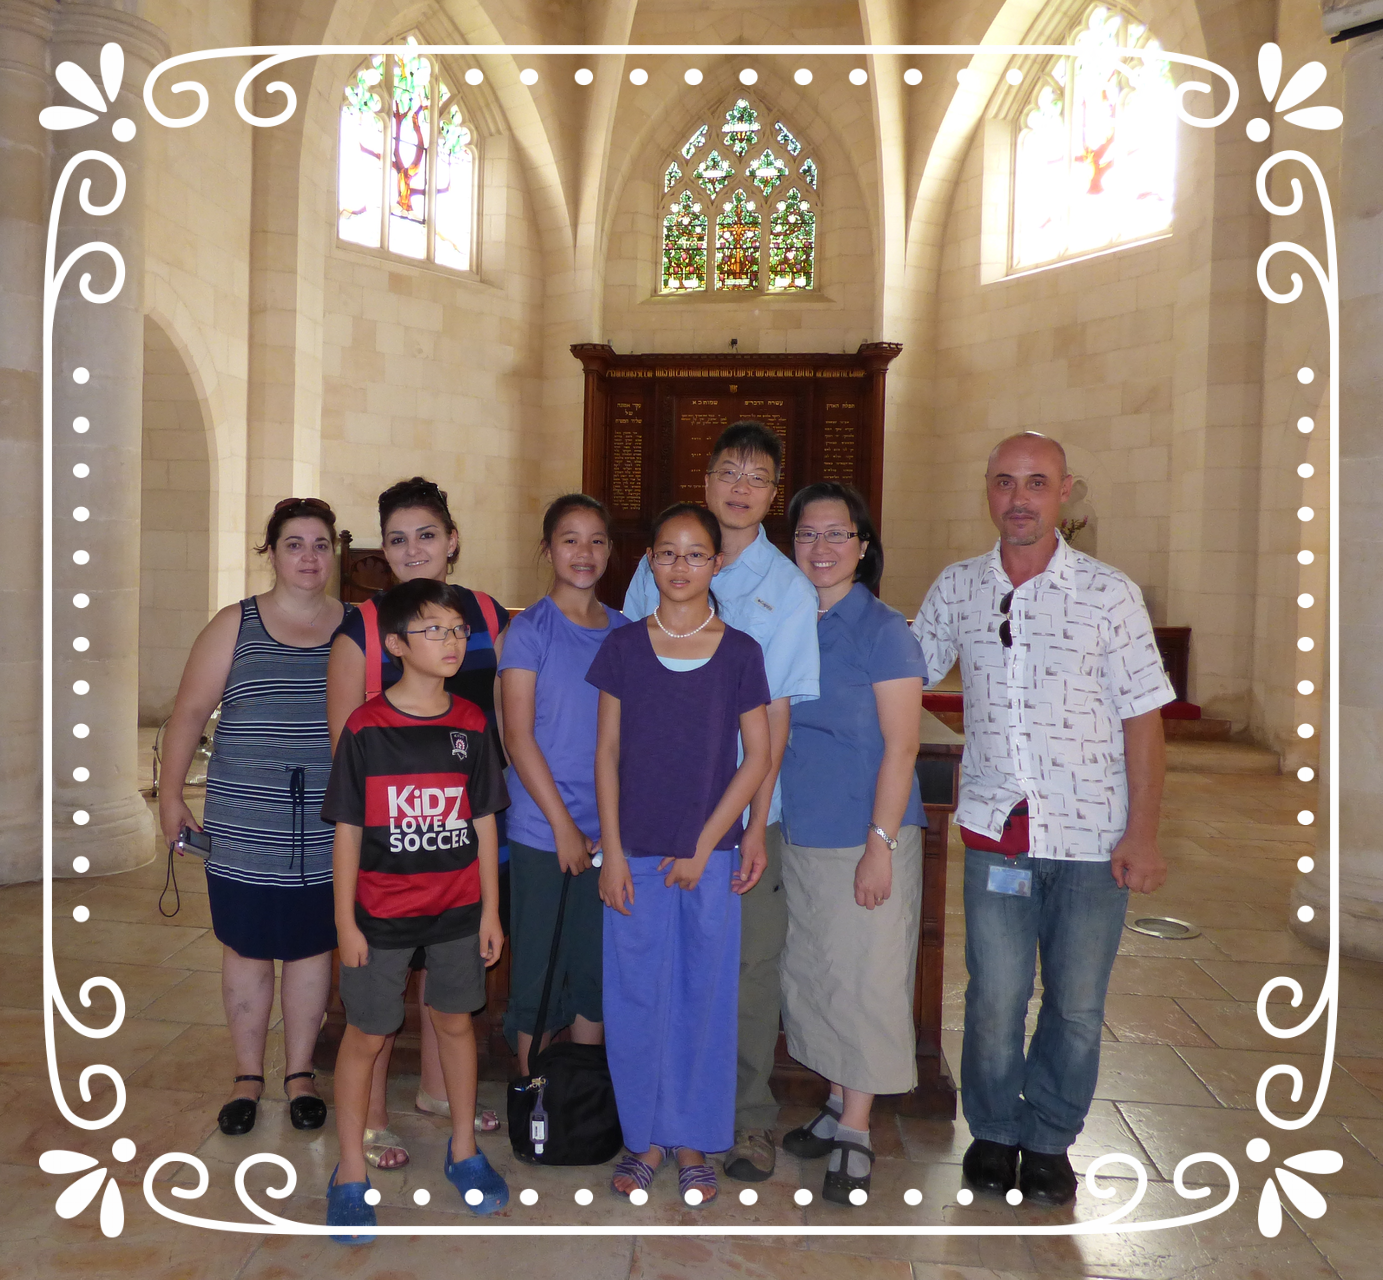 The tourists from San Francisco in Jerusalem